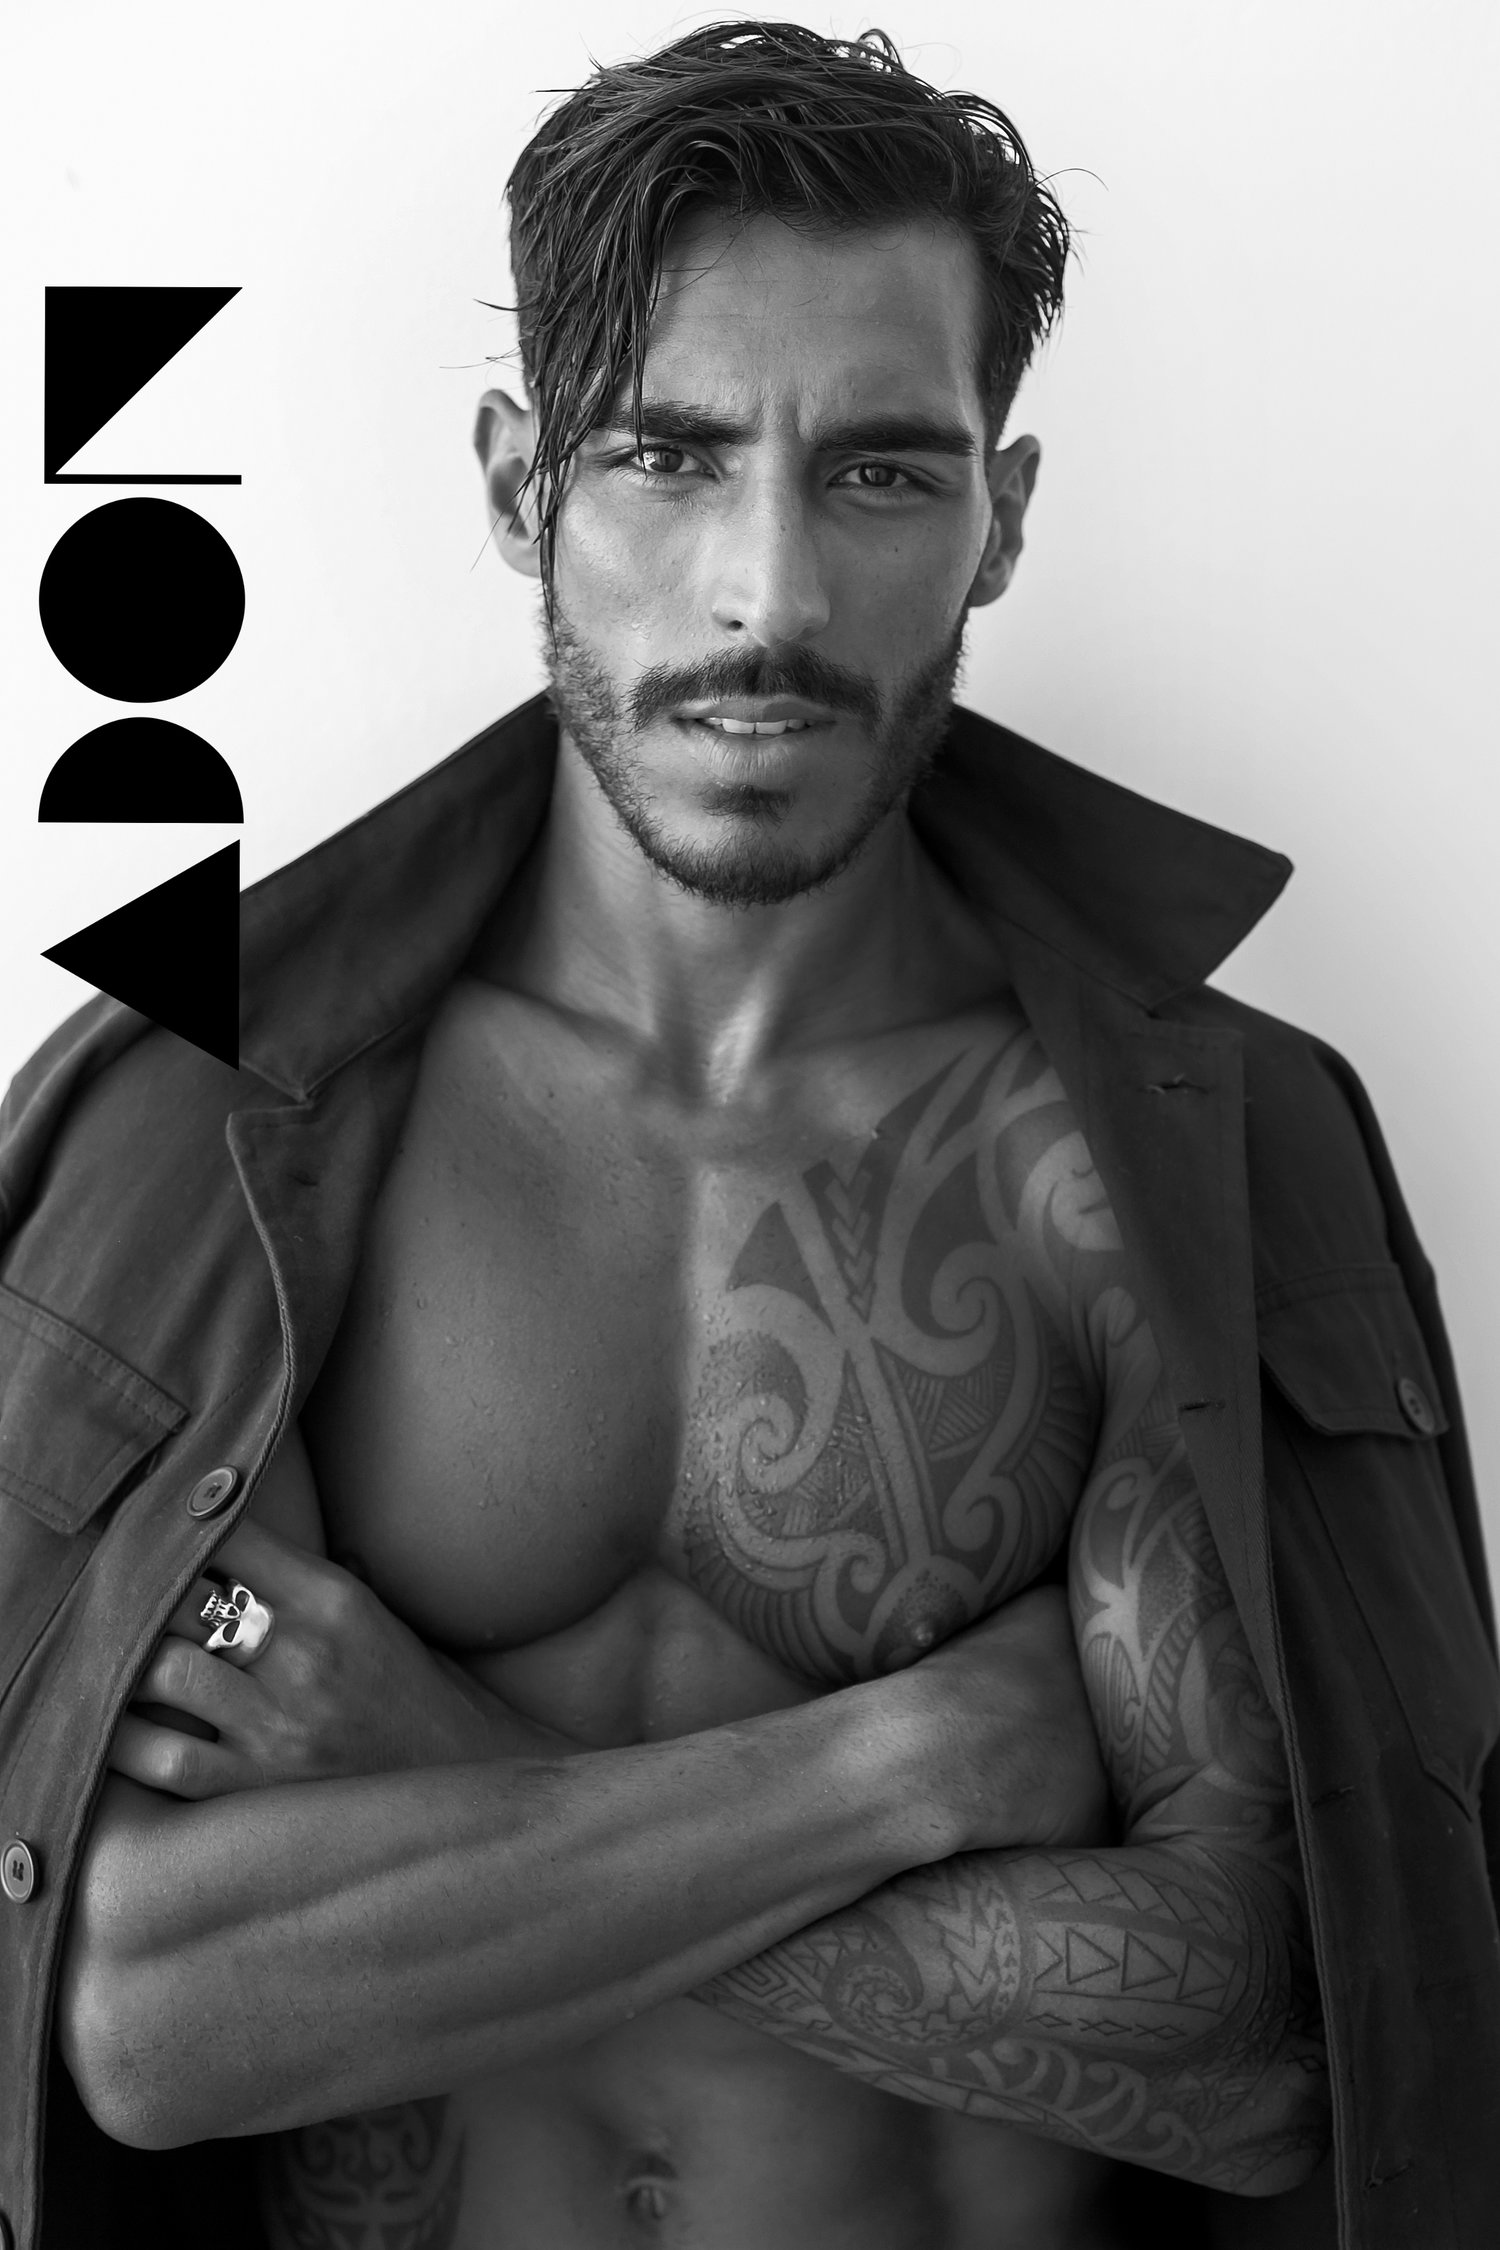 Adon Exclusive: Model Paulo Philippe By Thi Martini